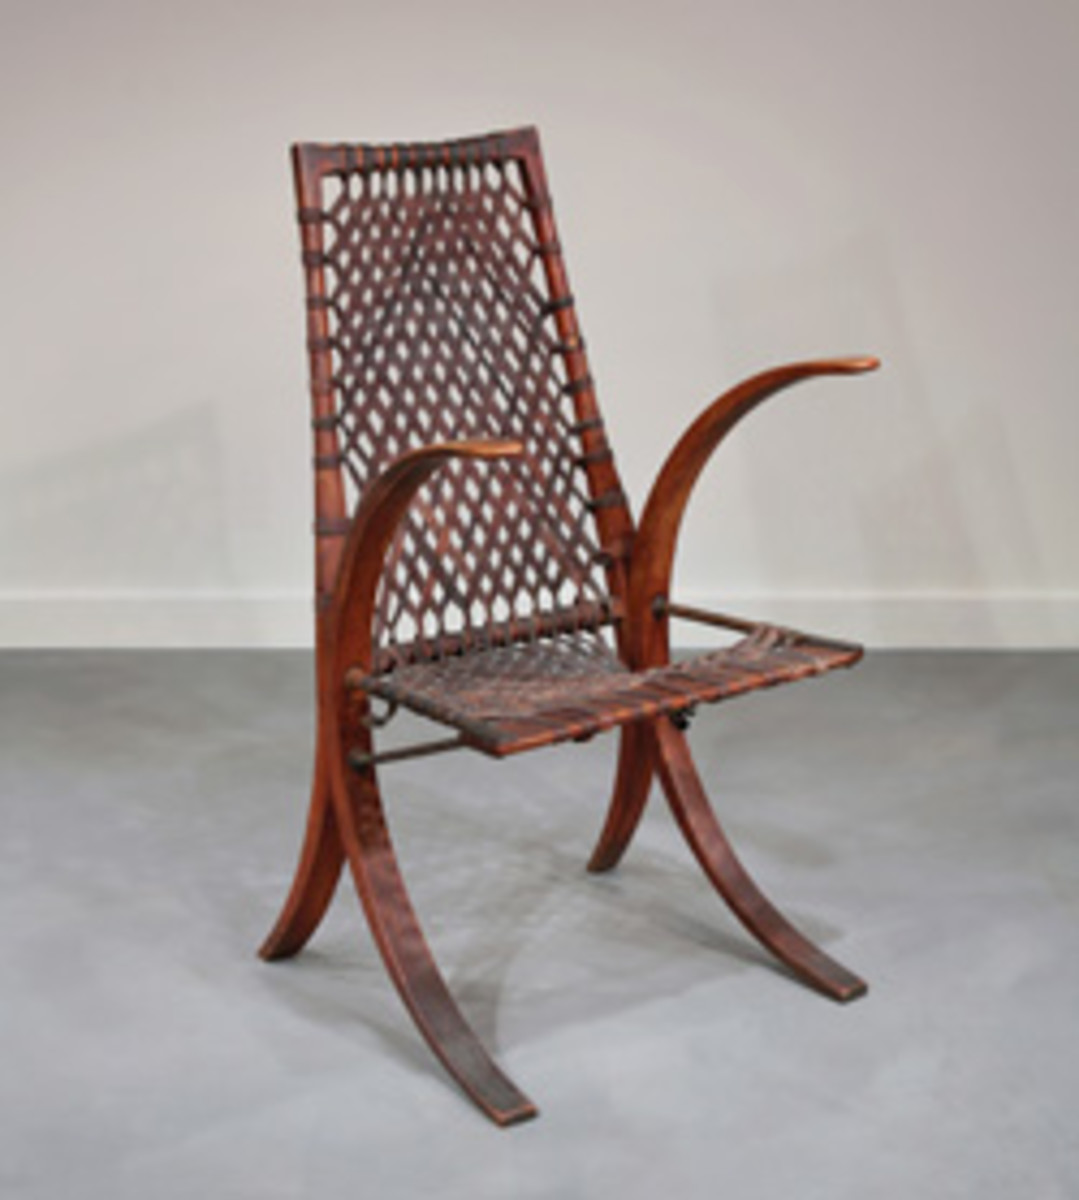 Esherick's Wagon Wheel armchair (1939) and his first music stand, commissioned in 1951.